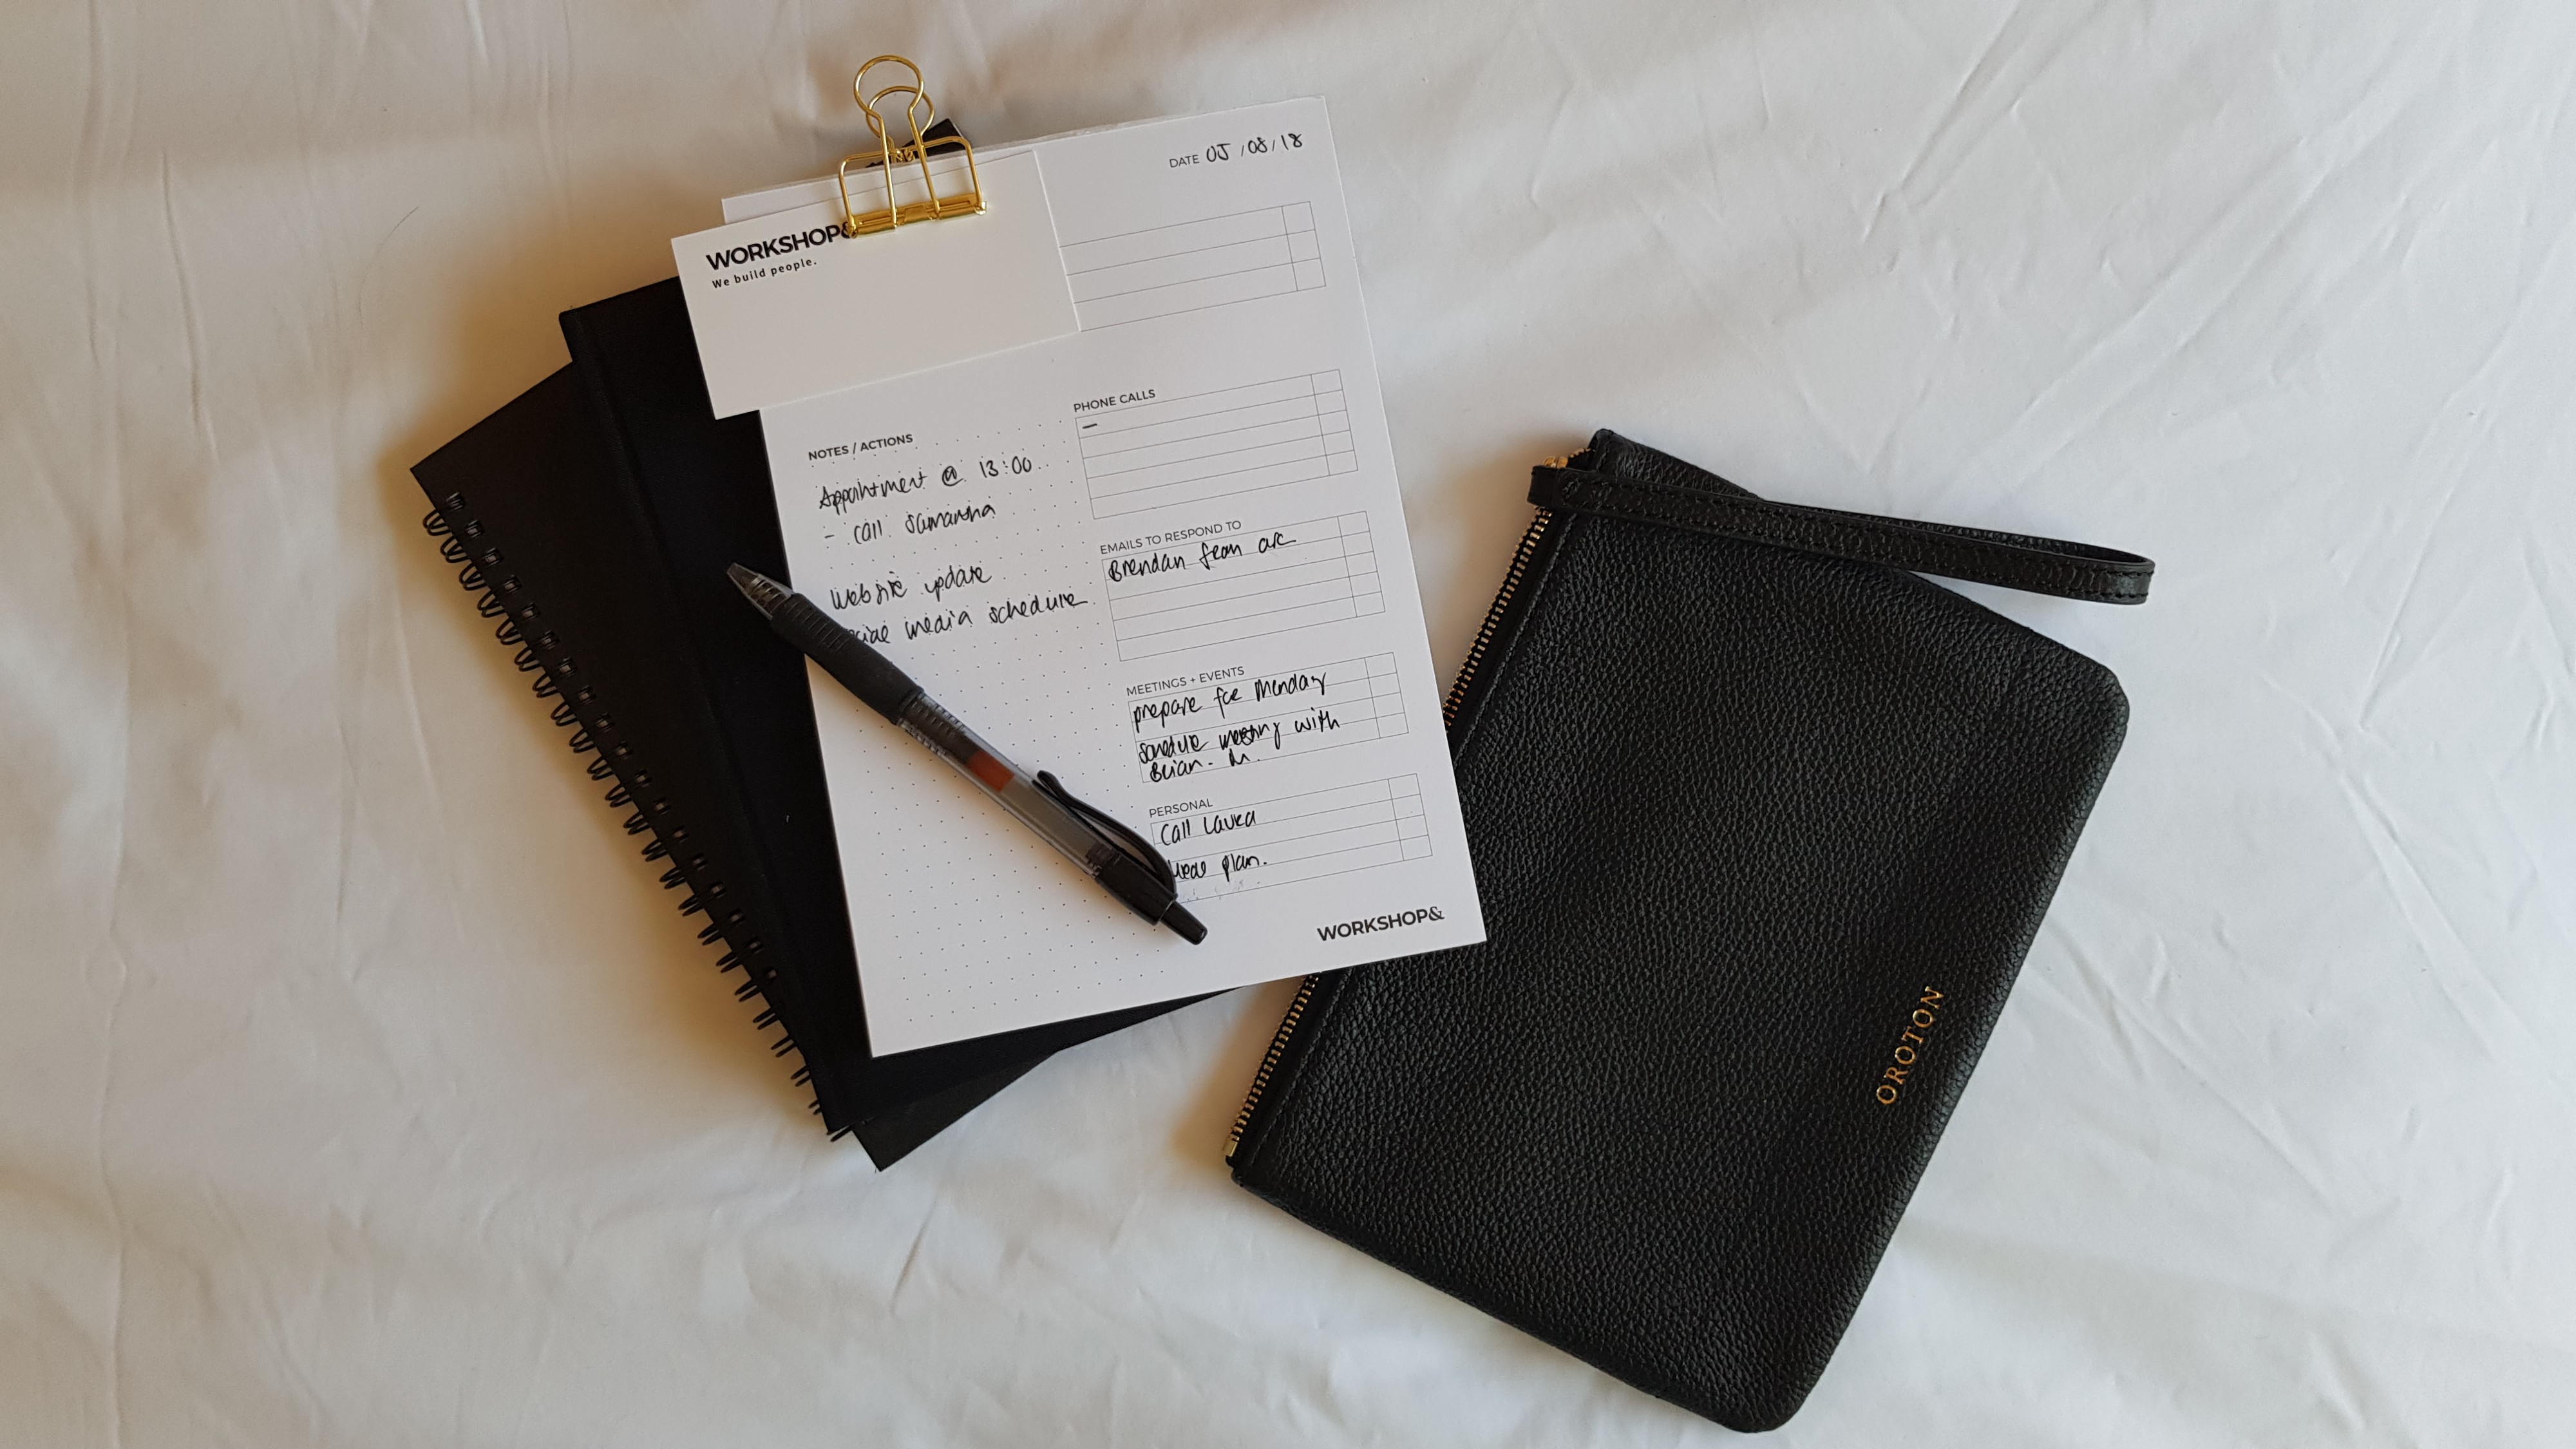 A note book with writing on it, on a white bed, with a small black purse next to it